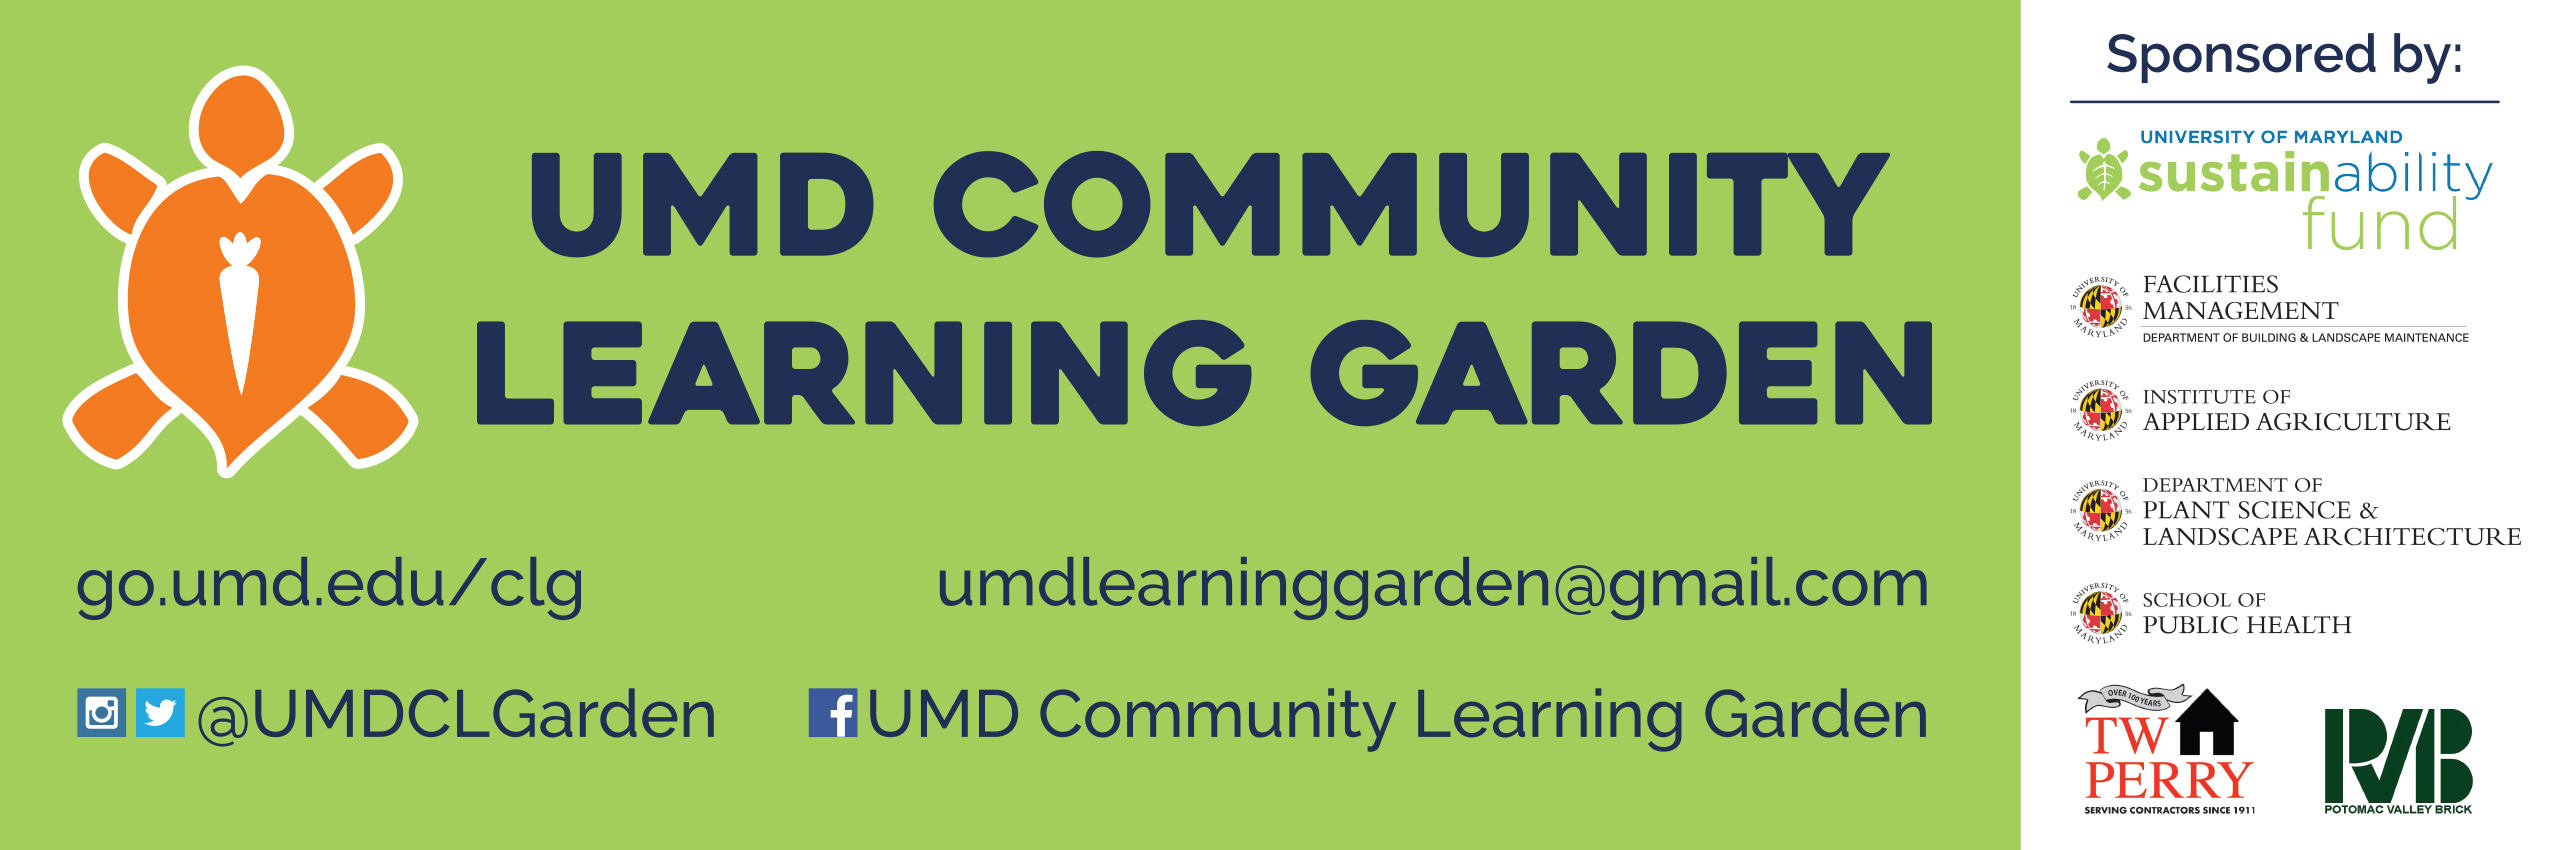 comm-learning-garden-banner-preview-option2